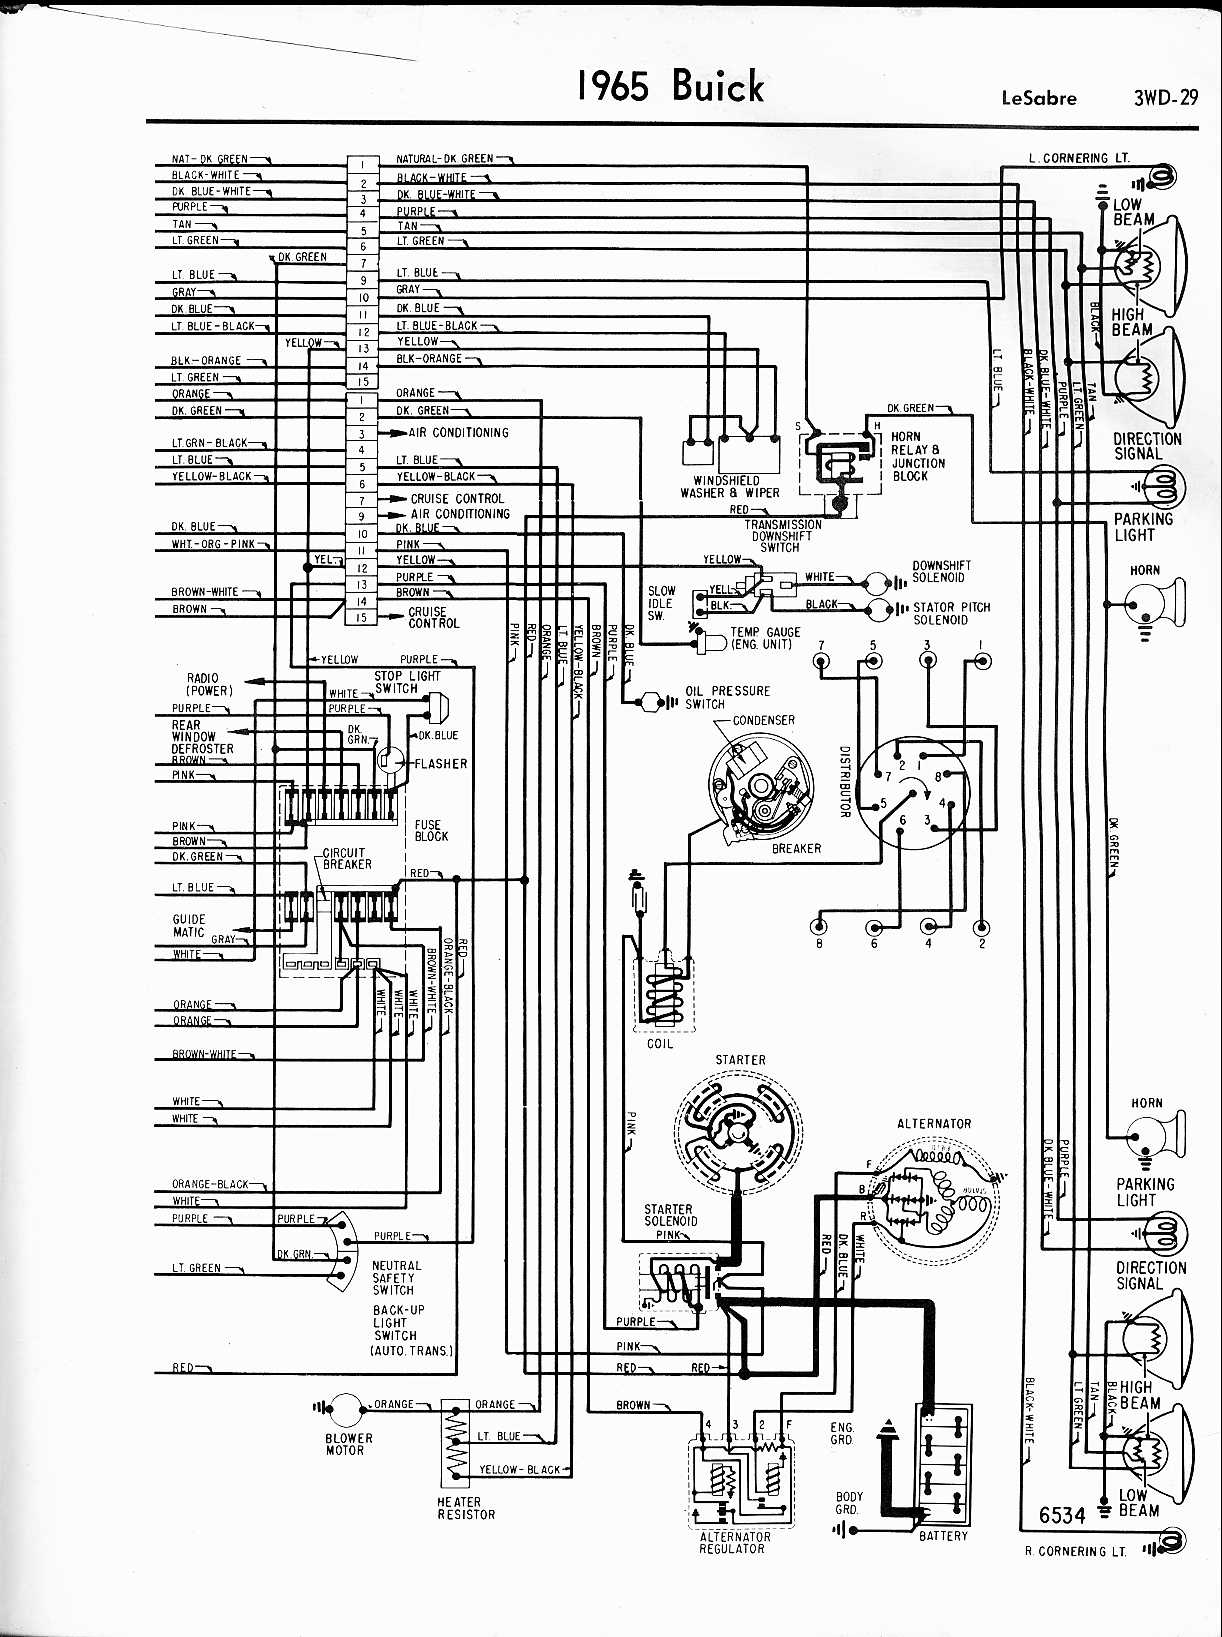 1966 Buick Skylark Wiring Harness Content Resource Of Wiring Diagram \u2022  1985 Buick Skylark 1966 Buick Skylark Wiring Diagram